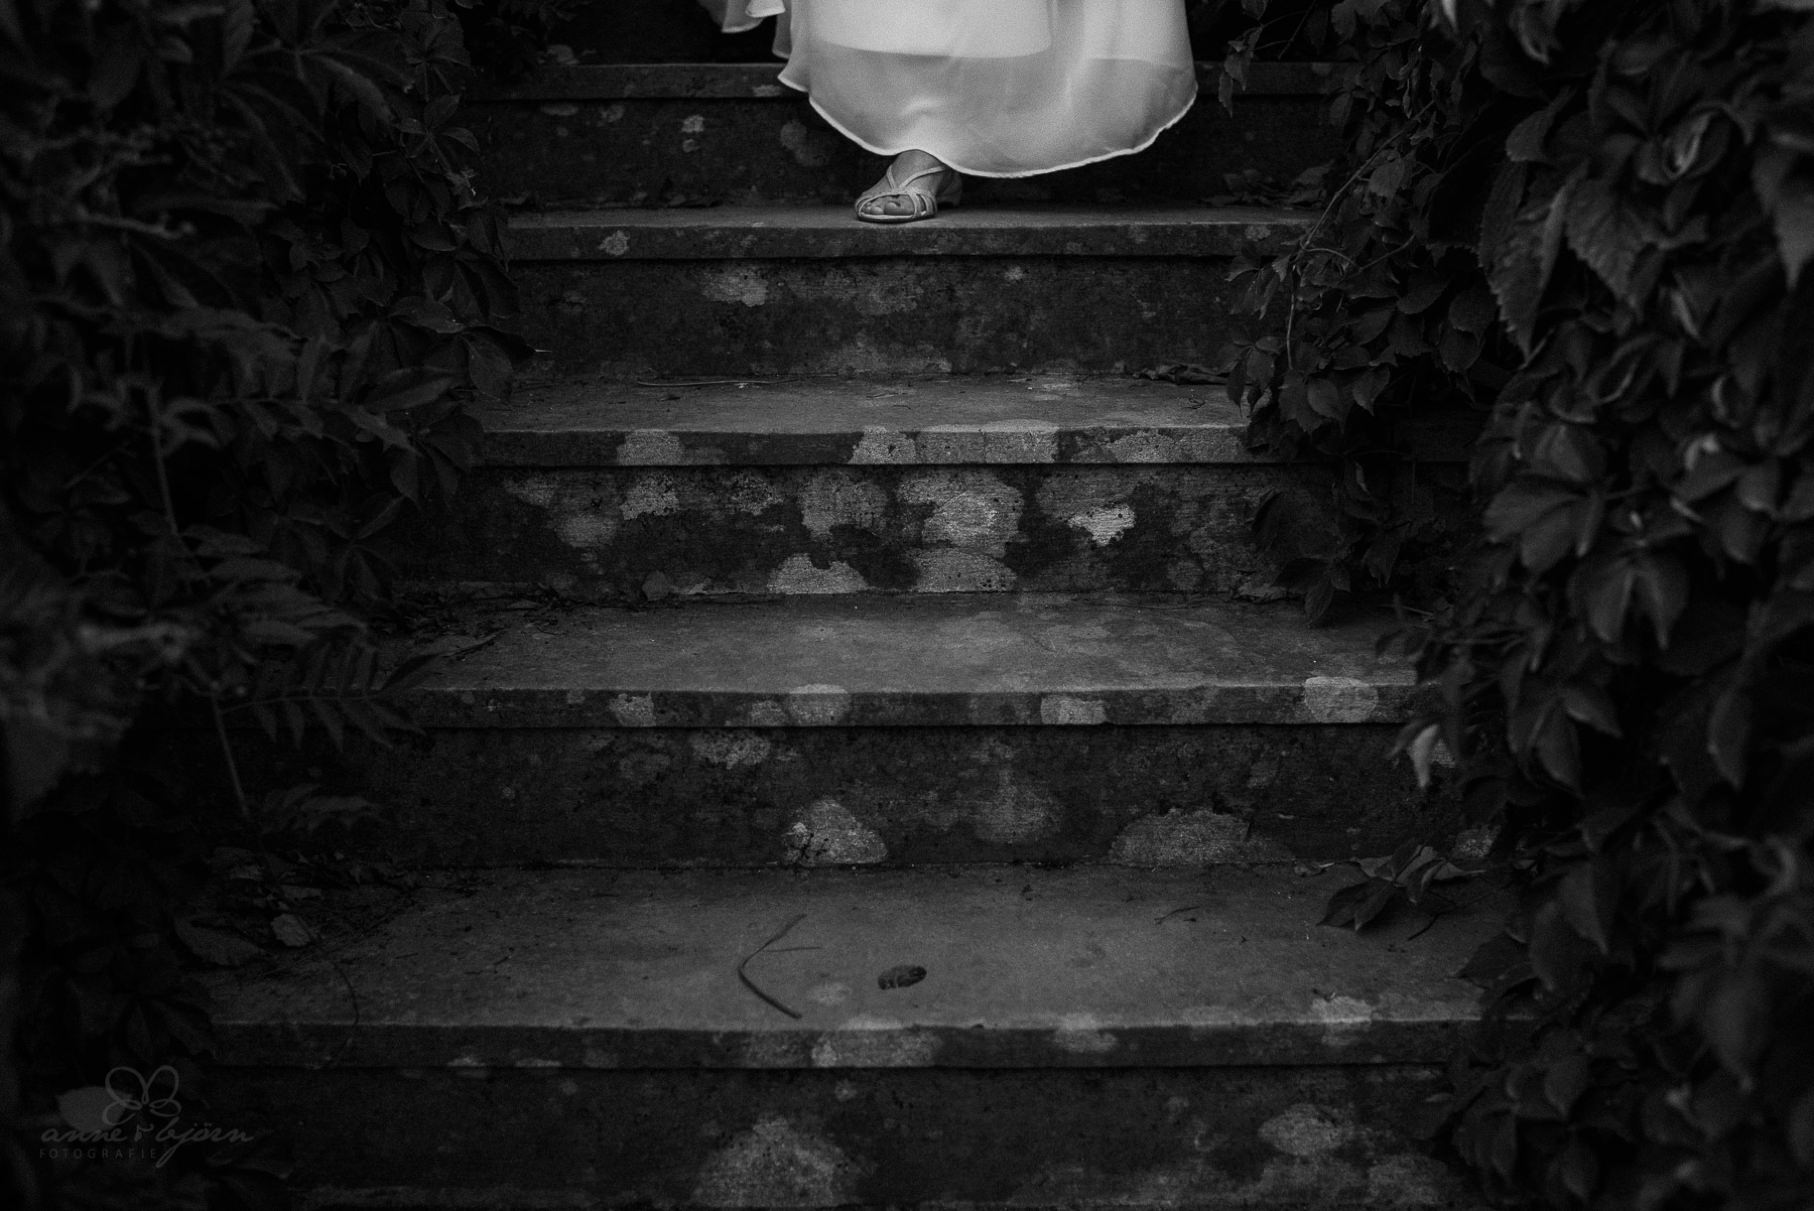 0076 anna olli portugal destination wedding dsc 6885 - Hochzeit in Portugal - Quinta de Santa´Ana